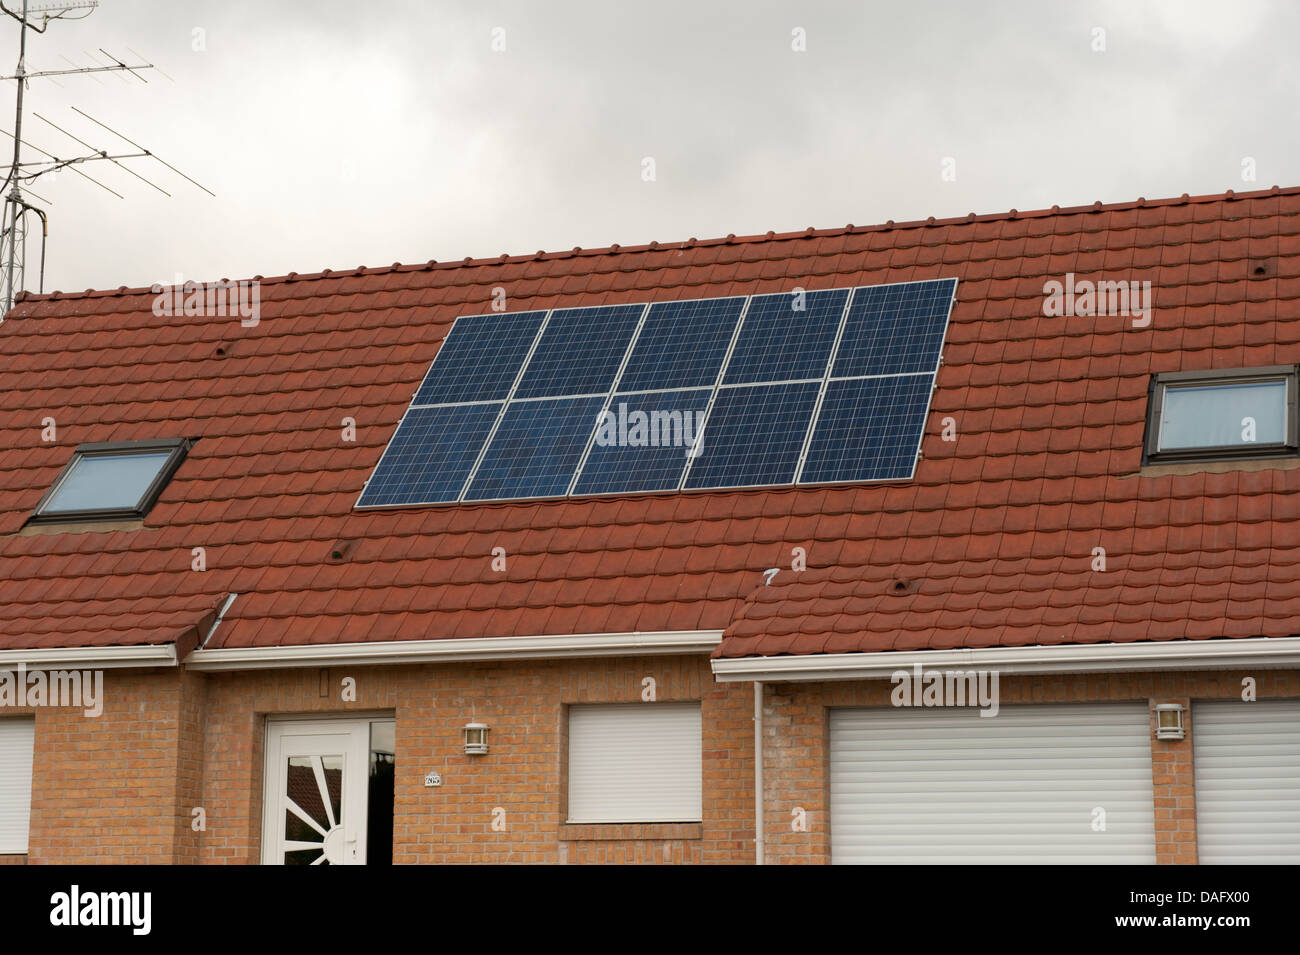 Solar Panels House Roof Campagne-les-Guines France - Stock Image